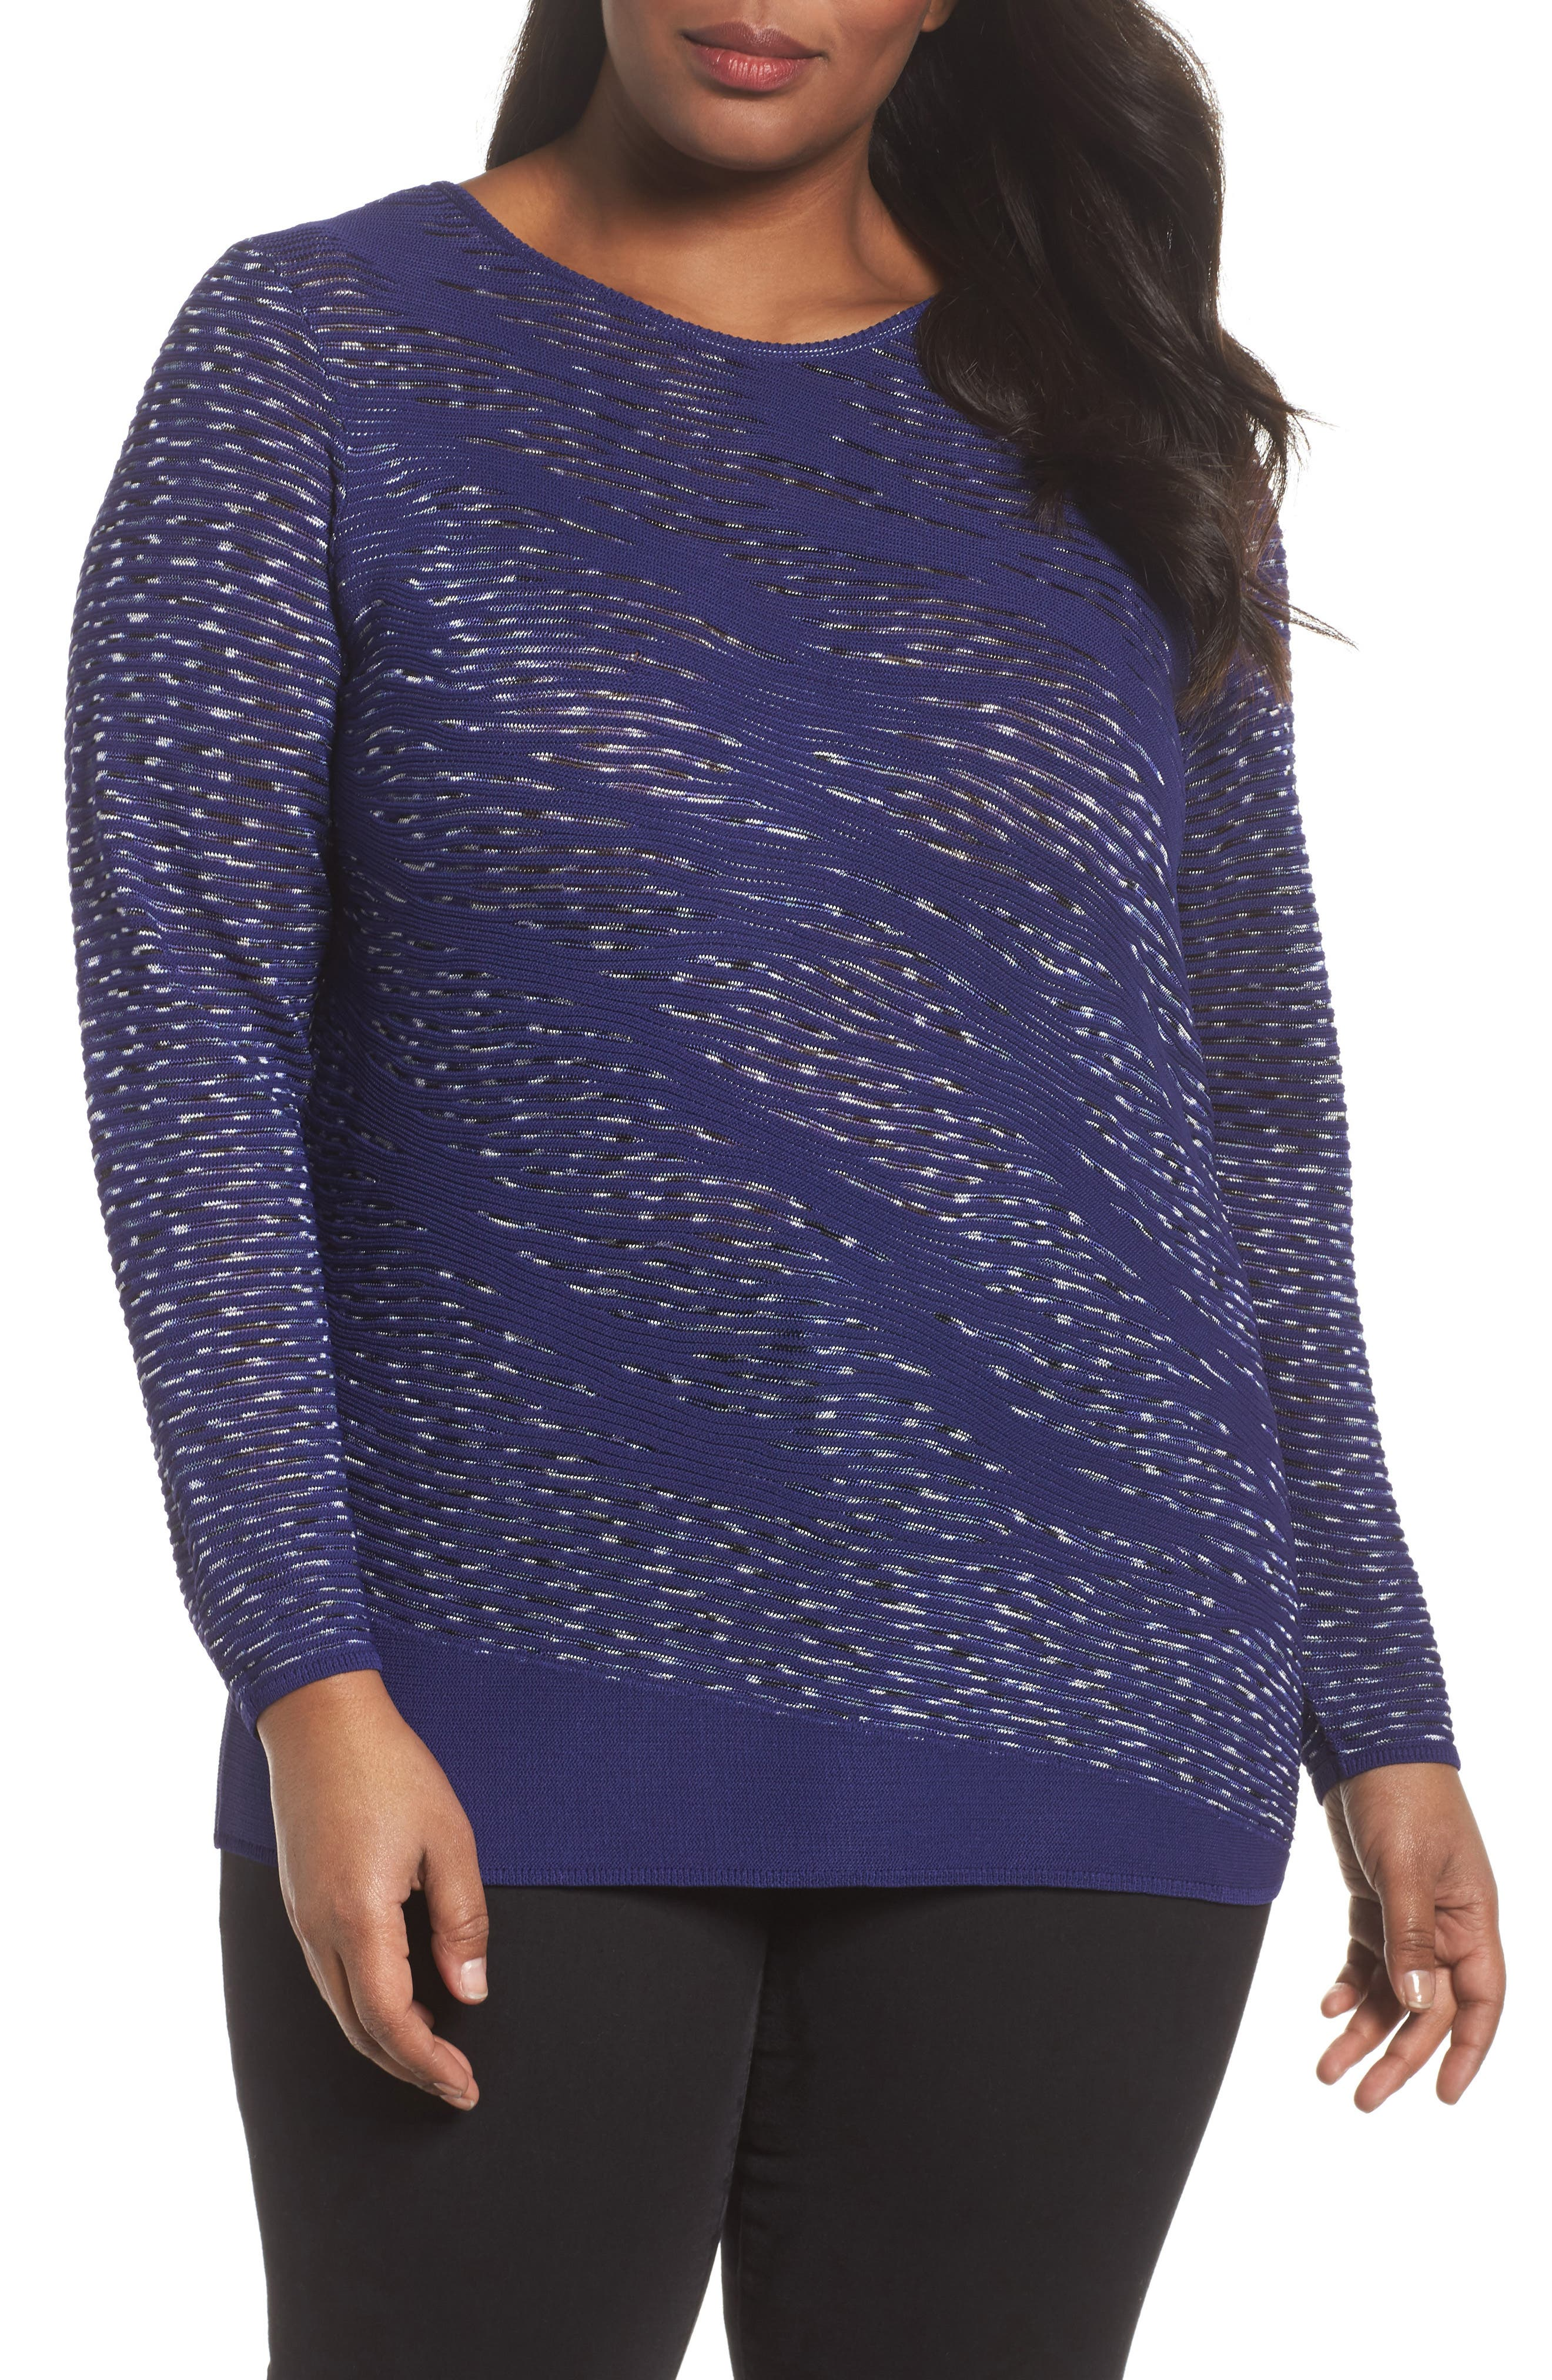 This Is Living Knit Top,                             Main thumbnail 2, color,